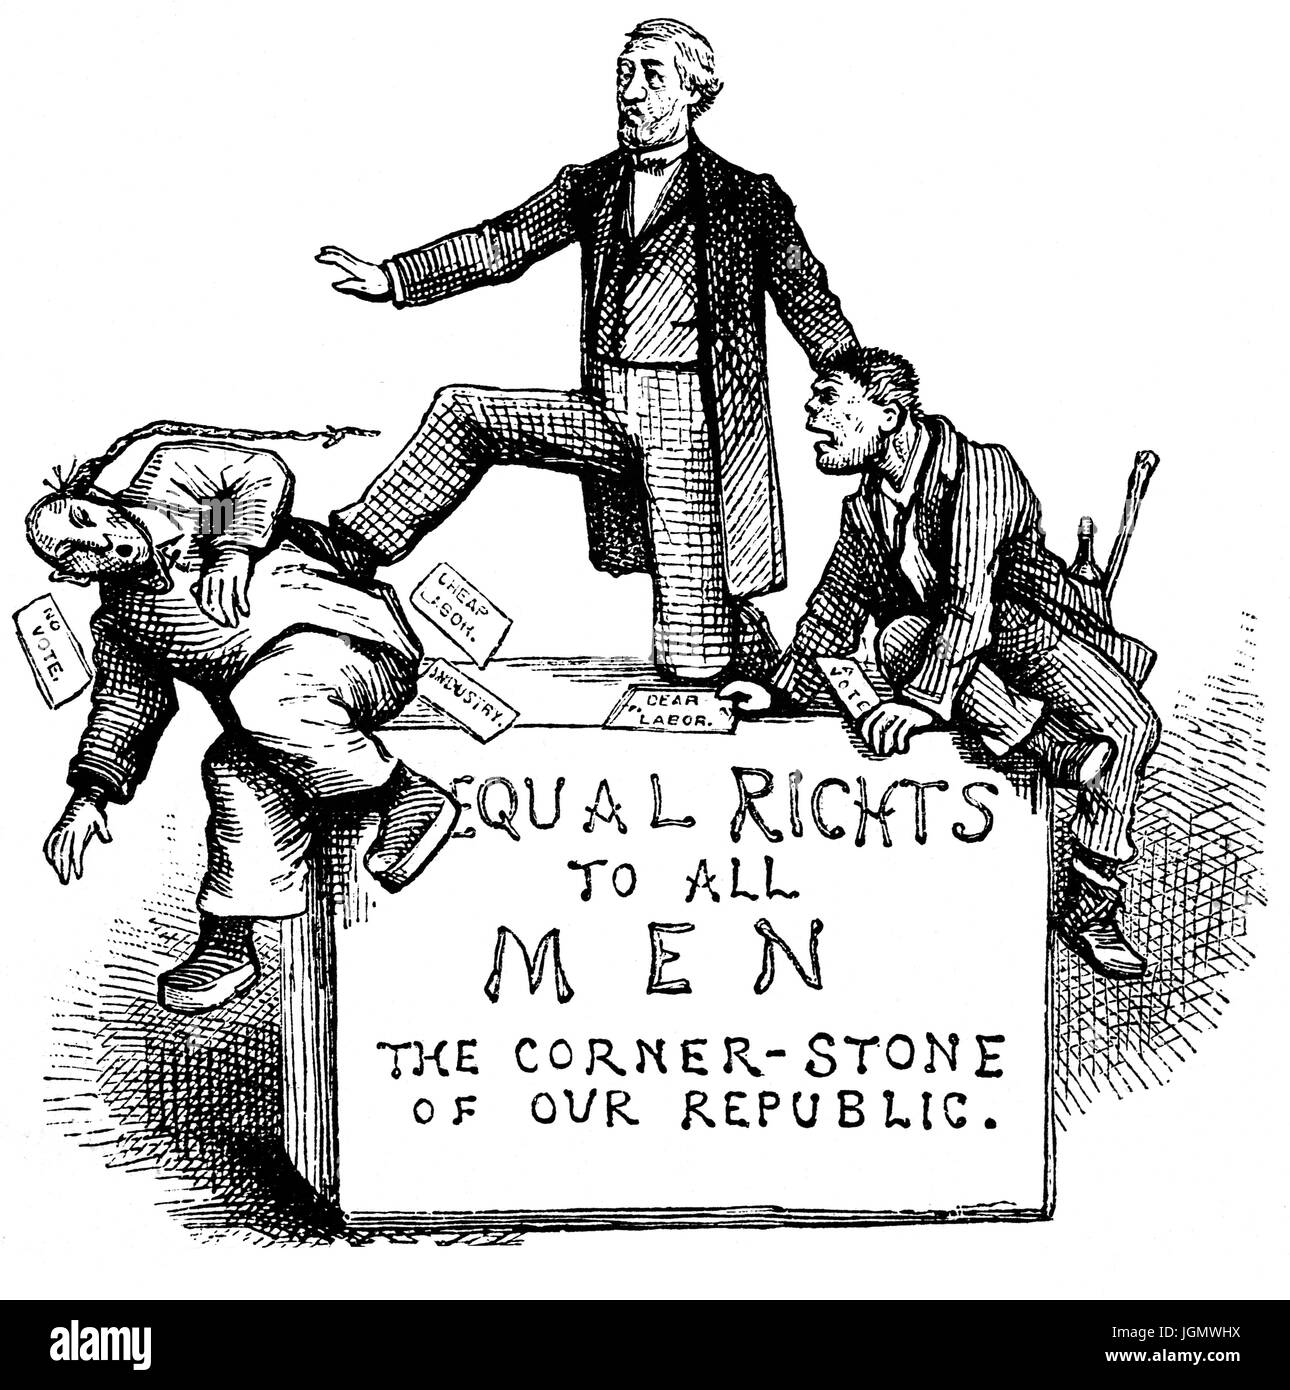 A Late 19th Century Political Cartoon Illustrating